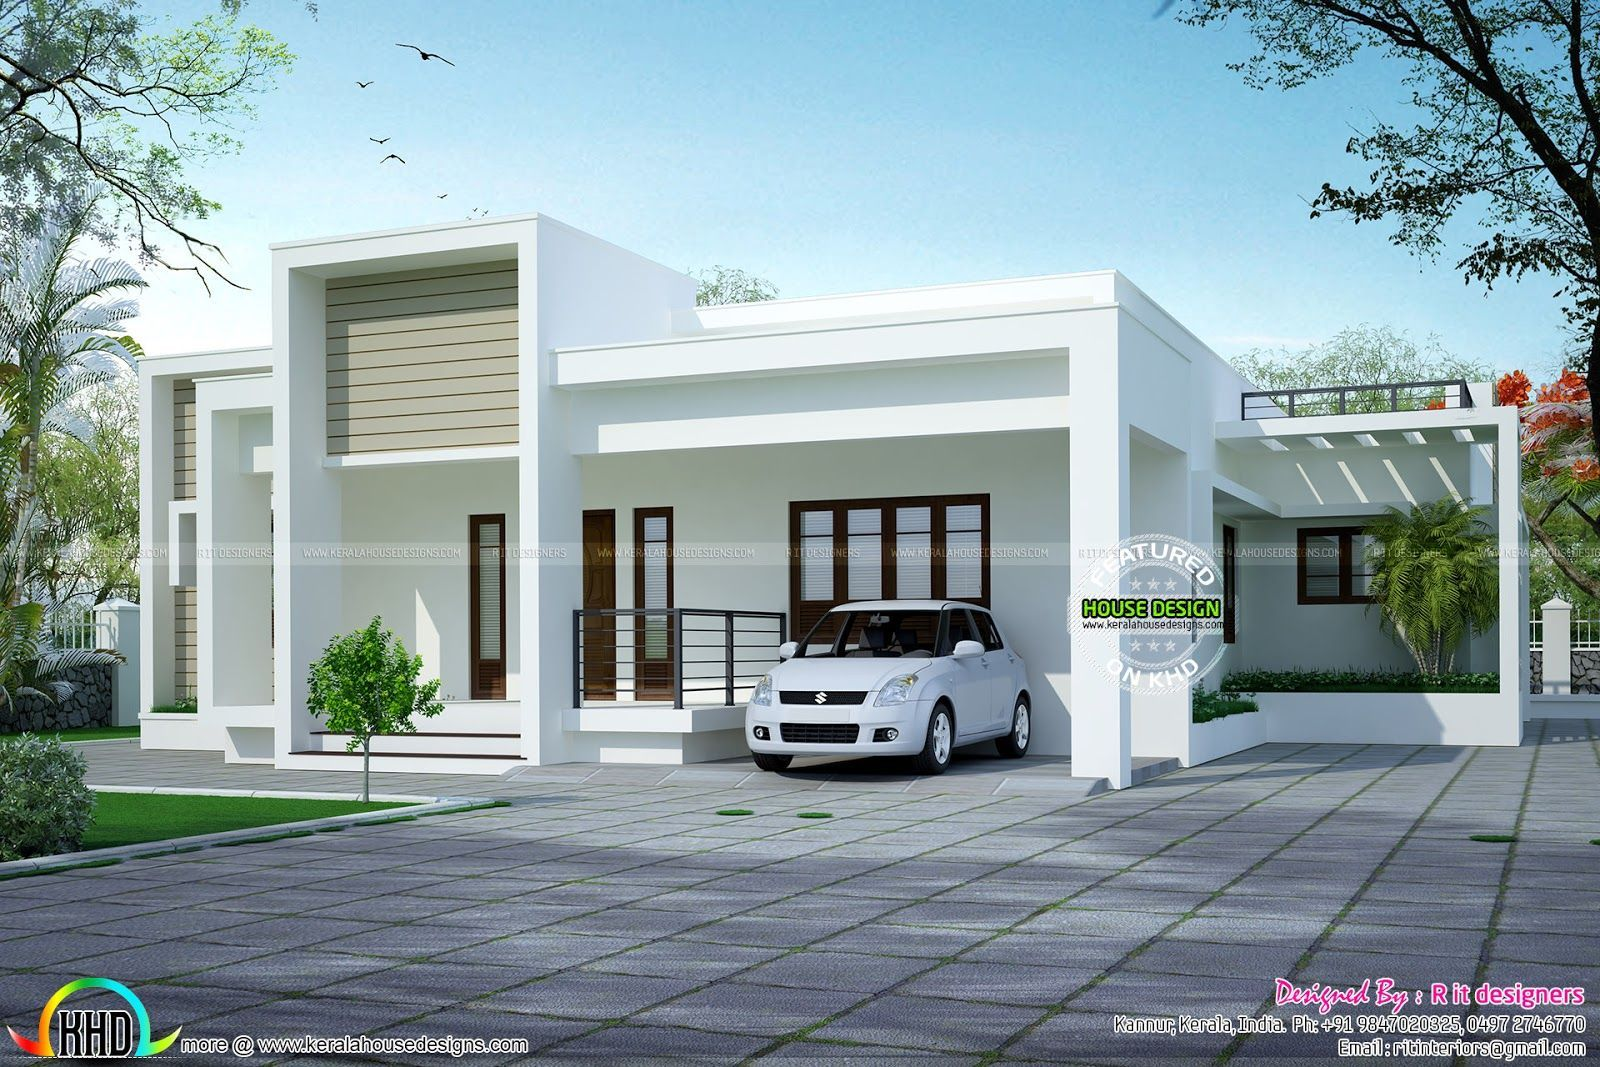 Flat Roof Design Nz Kerala House Design Single Floor House Design Small House Architecture